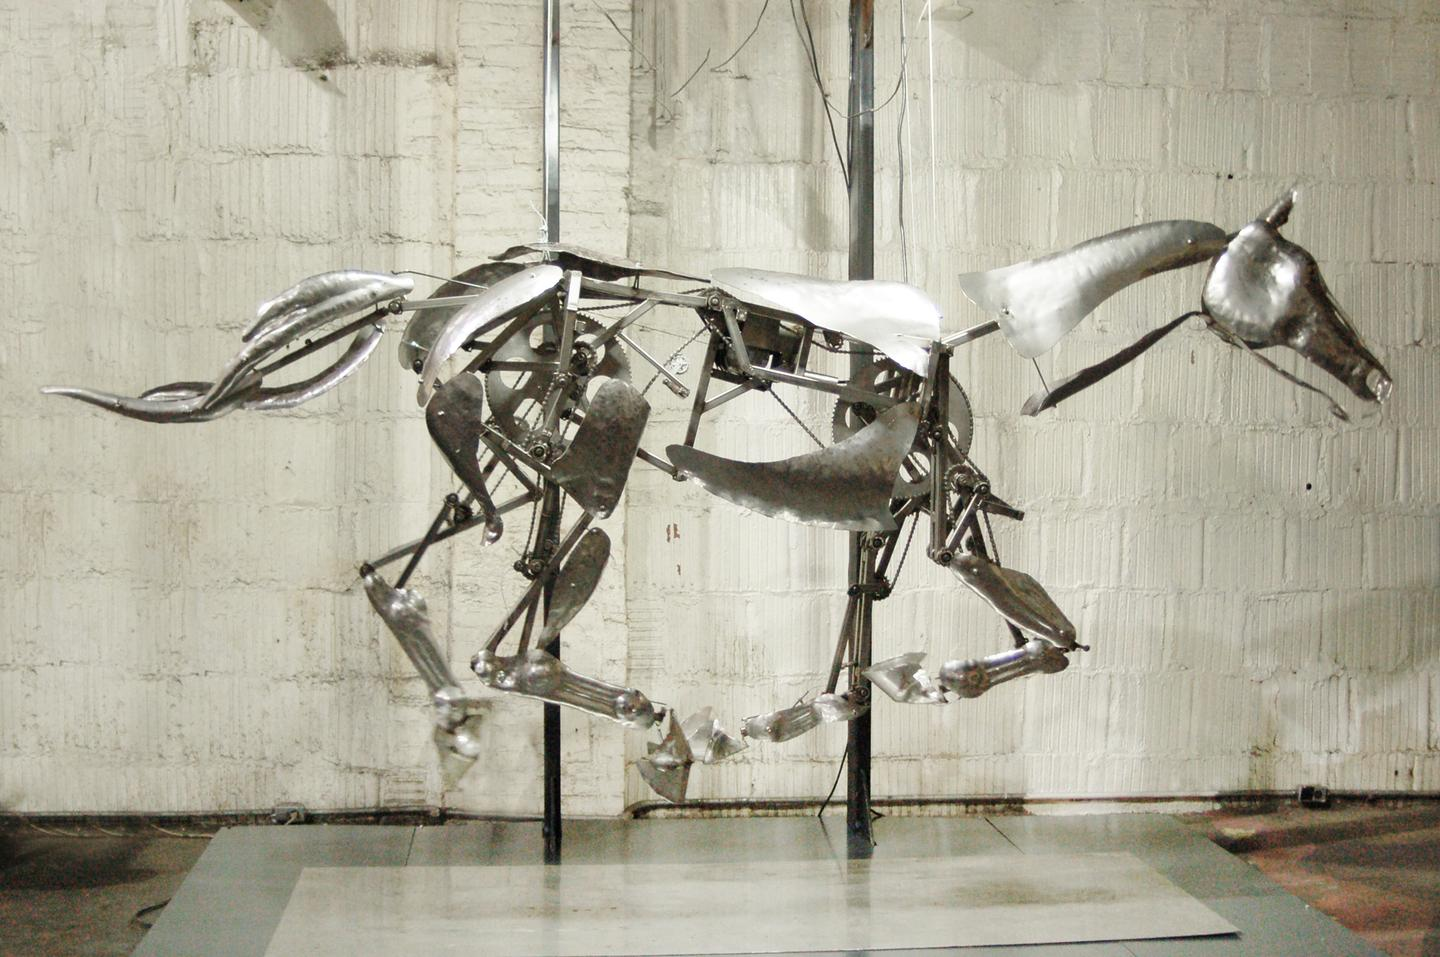 The galloping Mechanical Horse, caught in motion (Photo: Adrian Landon)